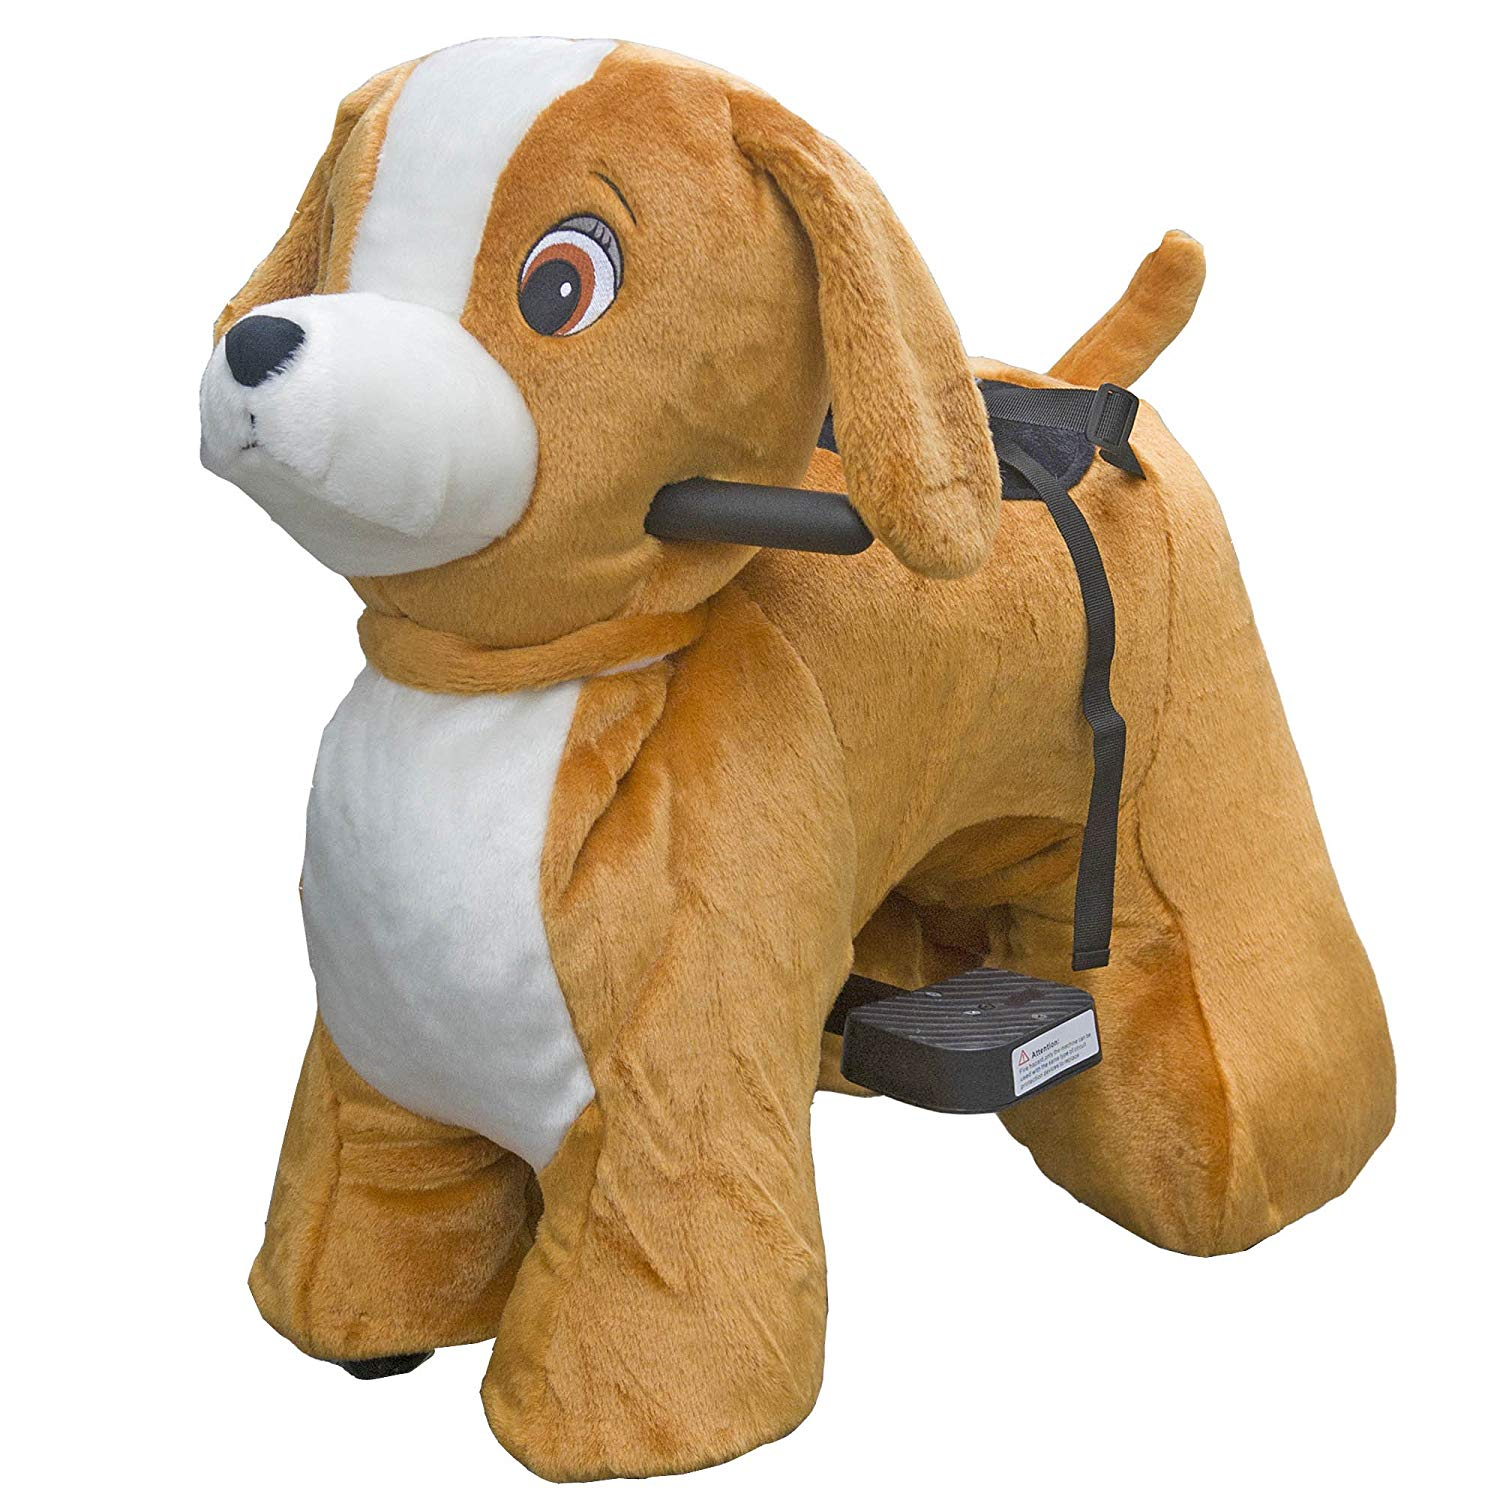 Rechargeable 6V 7A Plush Animal Ride On Toy for Kids (3 ~ 7 Years Old) With Safety Belt Dog by HOVERHEART